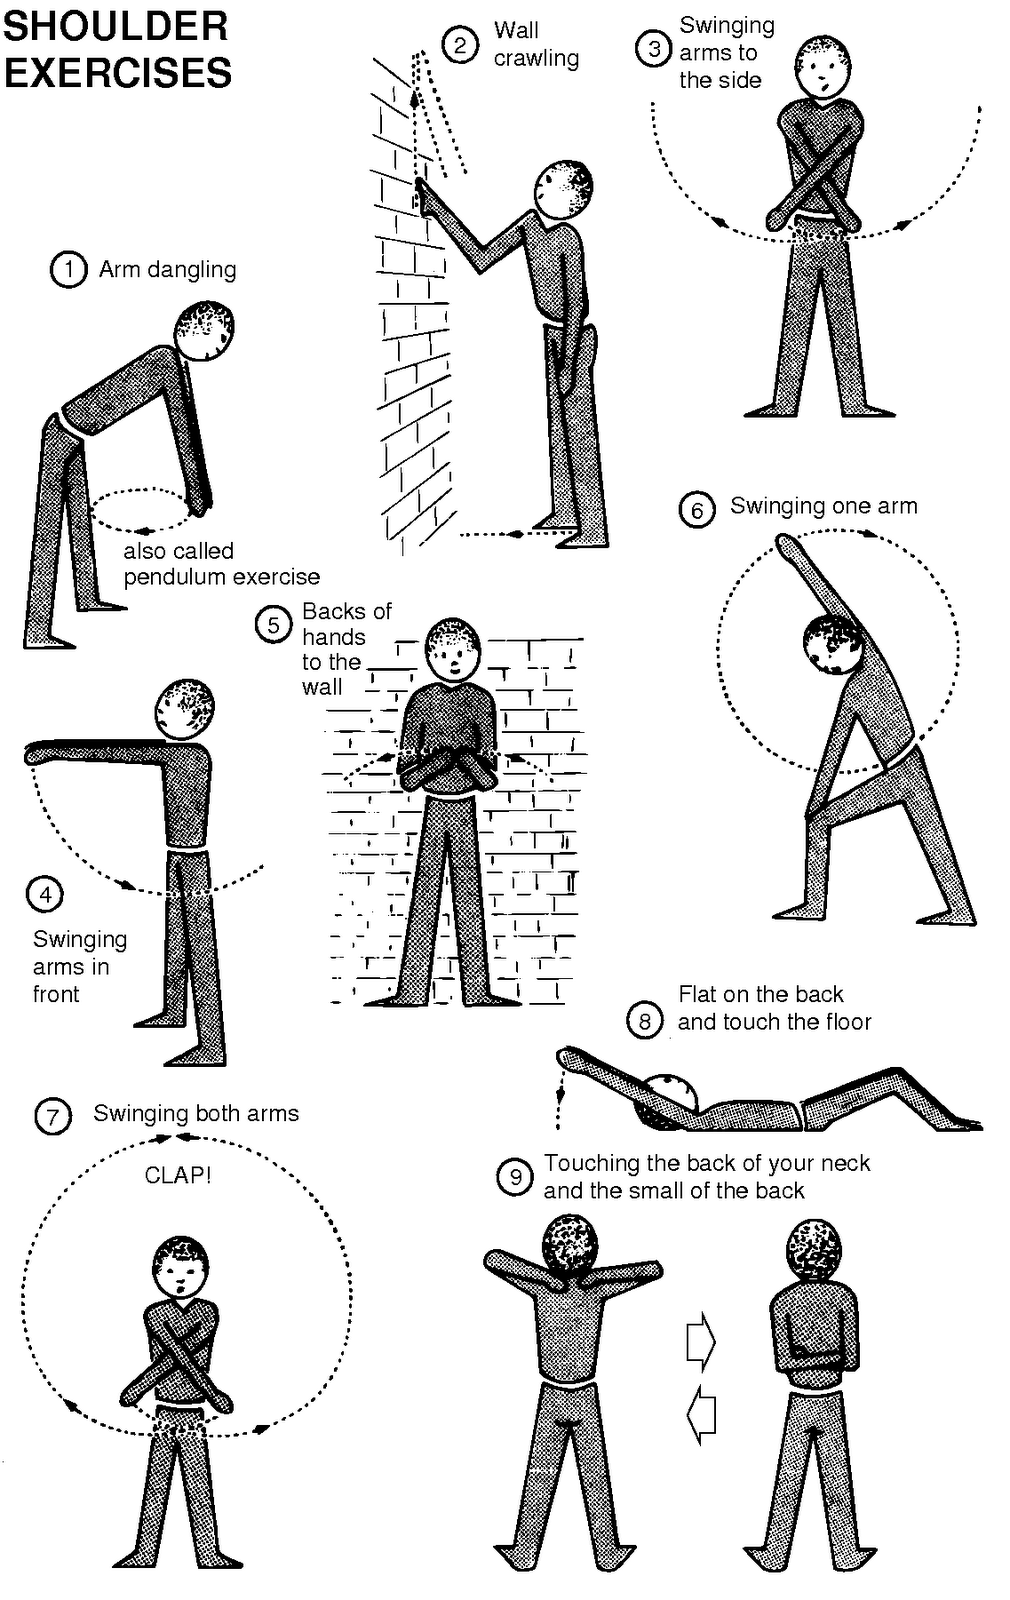 Physiotherapy guide for physiotherapists free exercise for shoulder